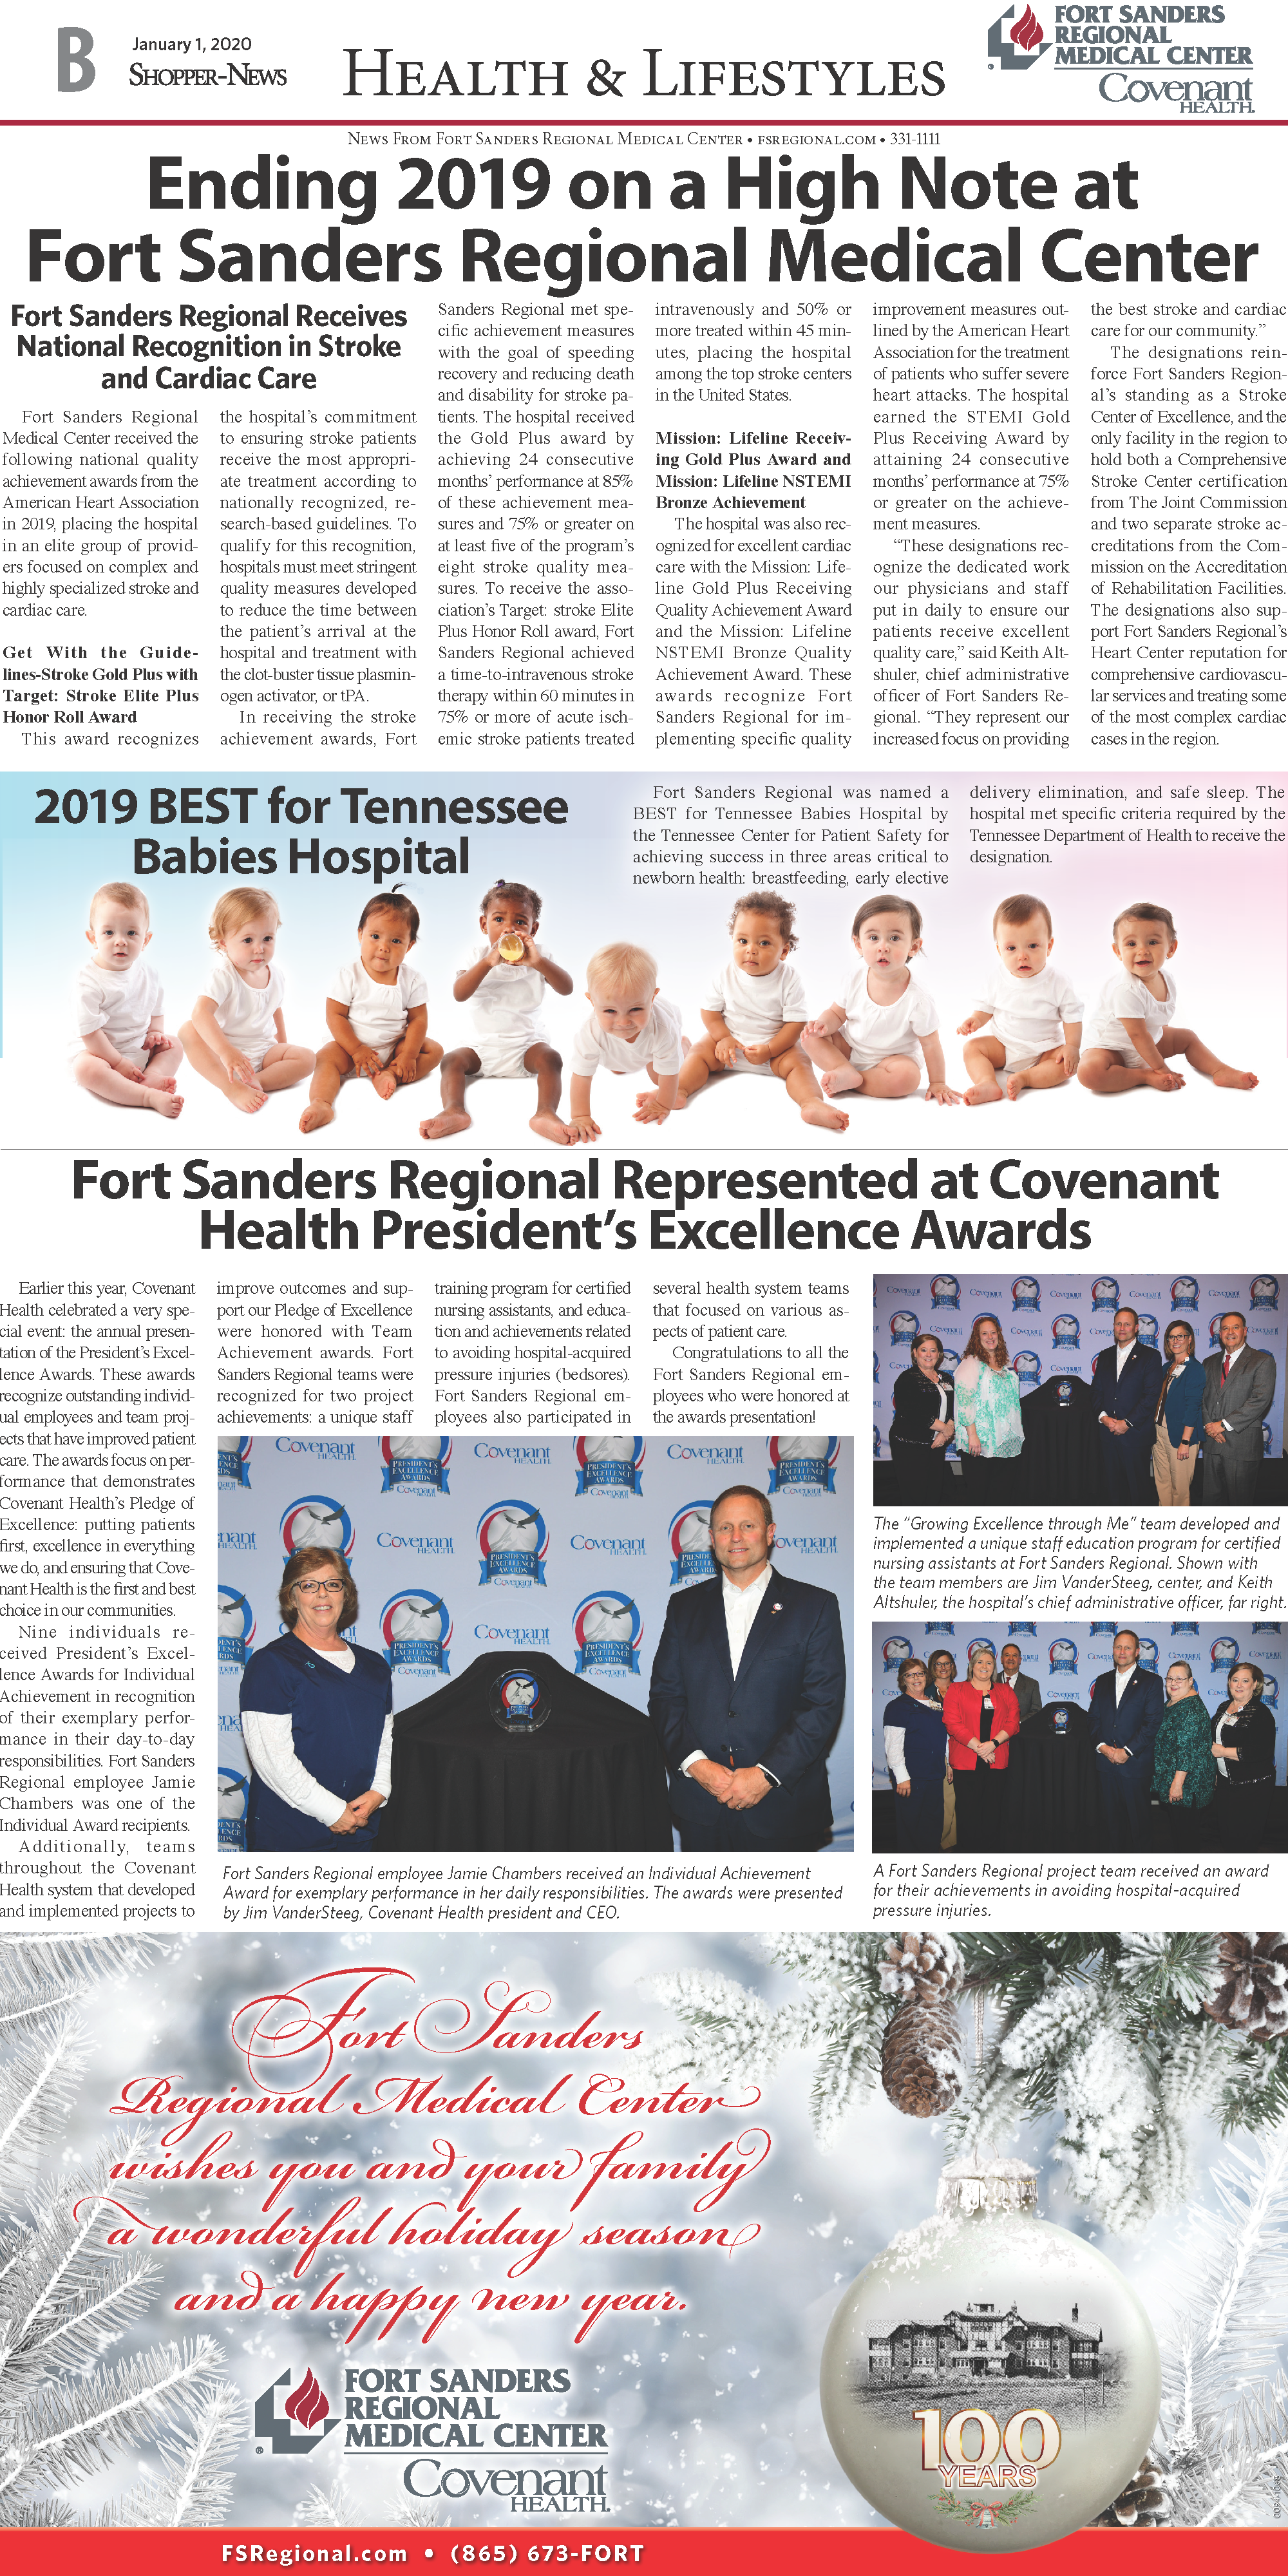 2019 awards round-up for Fort Sanders Regional Medical Center; A Shopper News feature